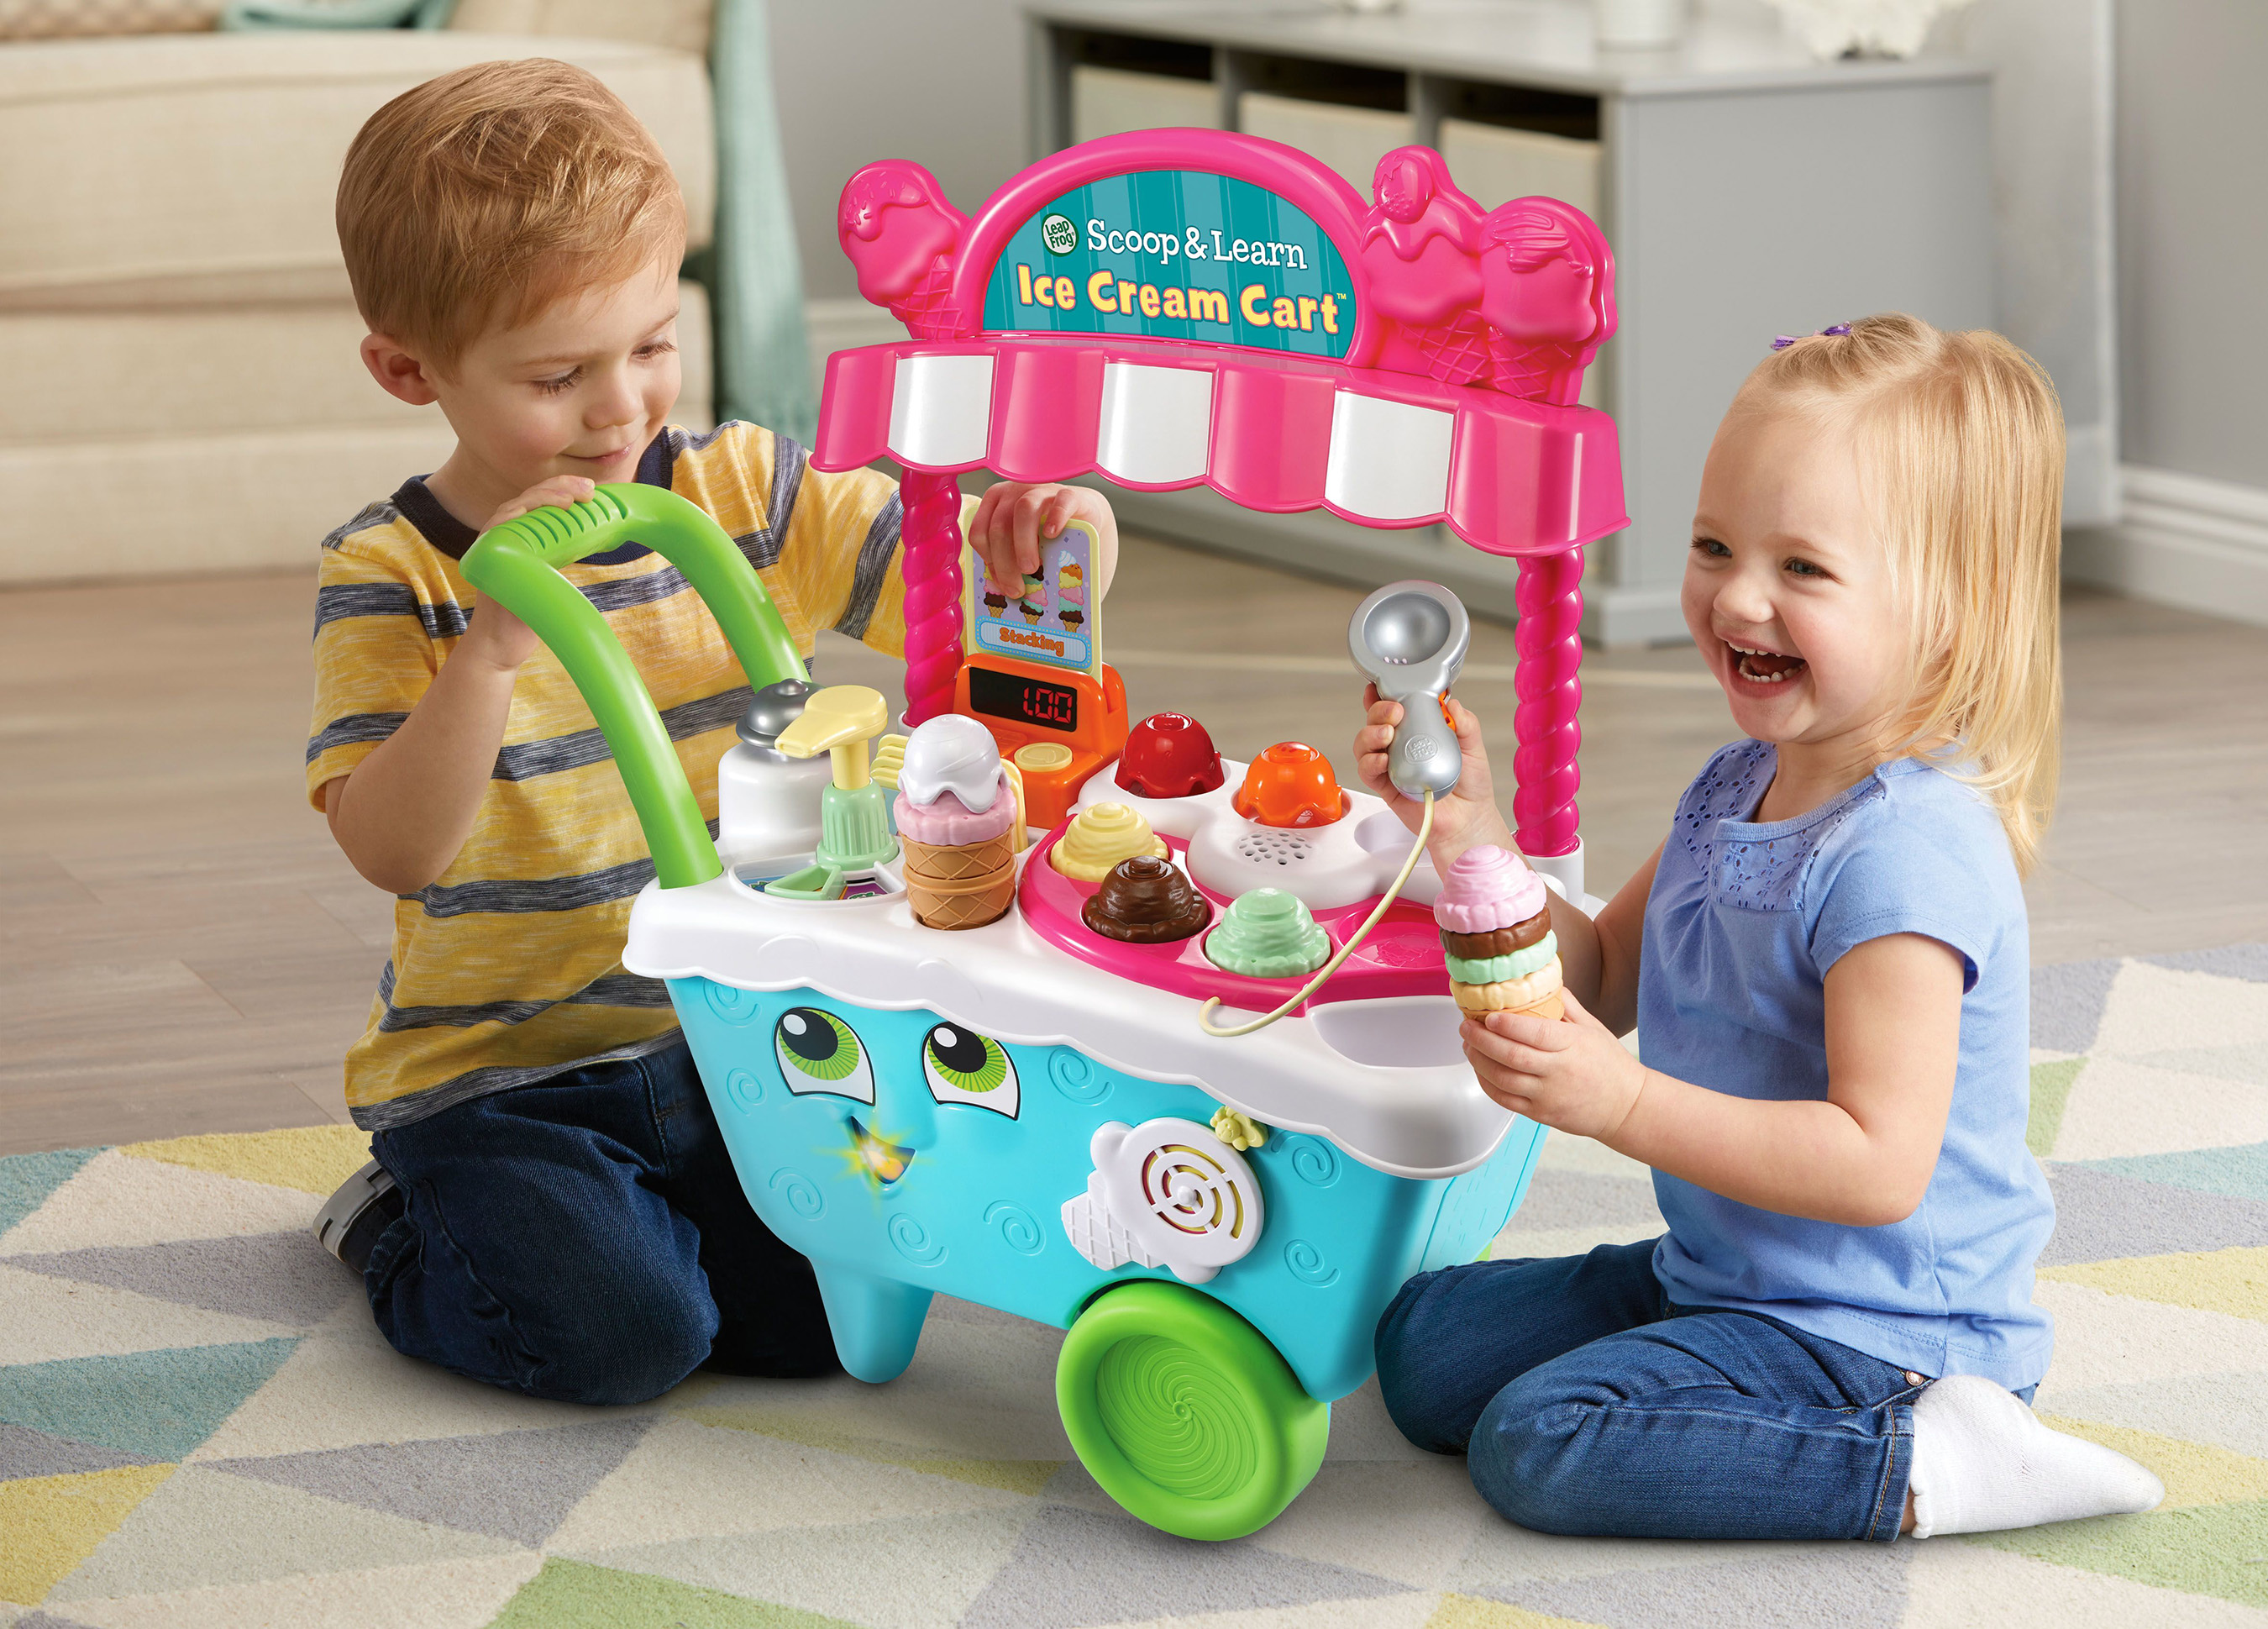 Educational Toys Nursery : Leapfrog introduces new infant and preschool learning toys